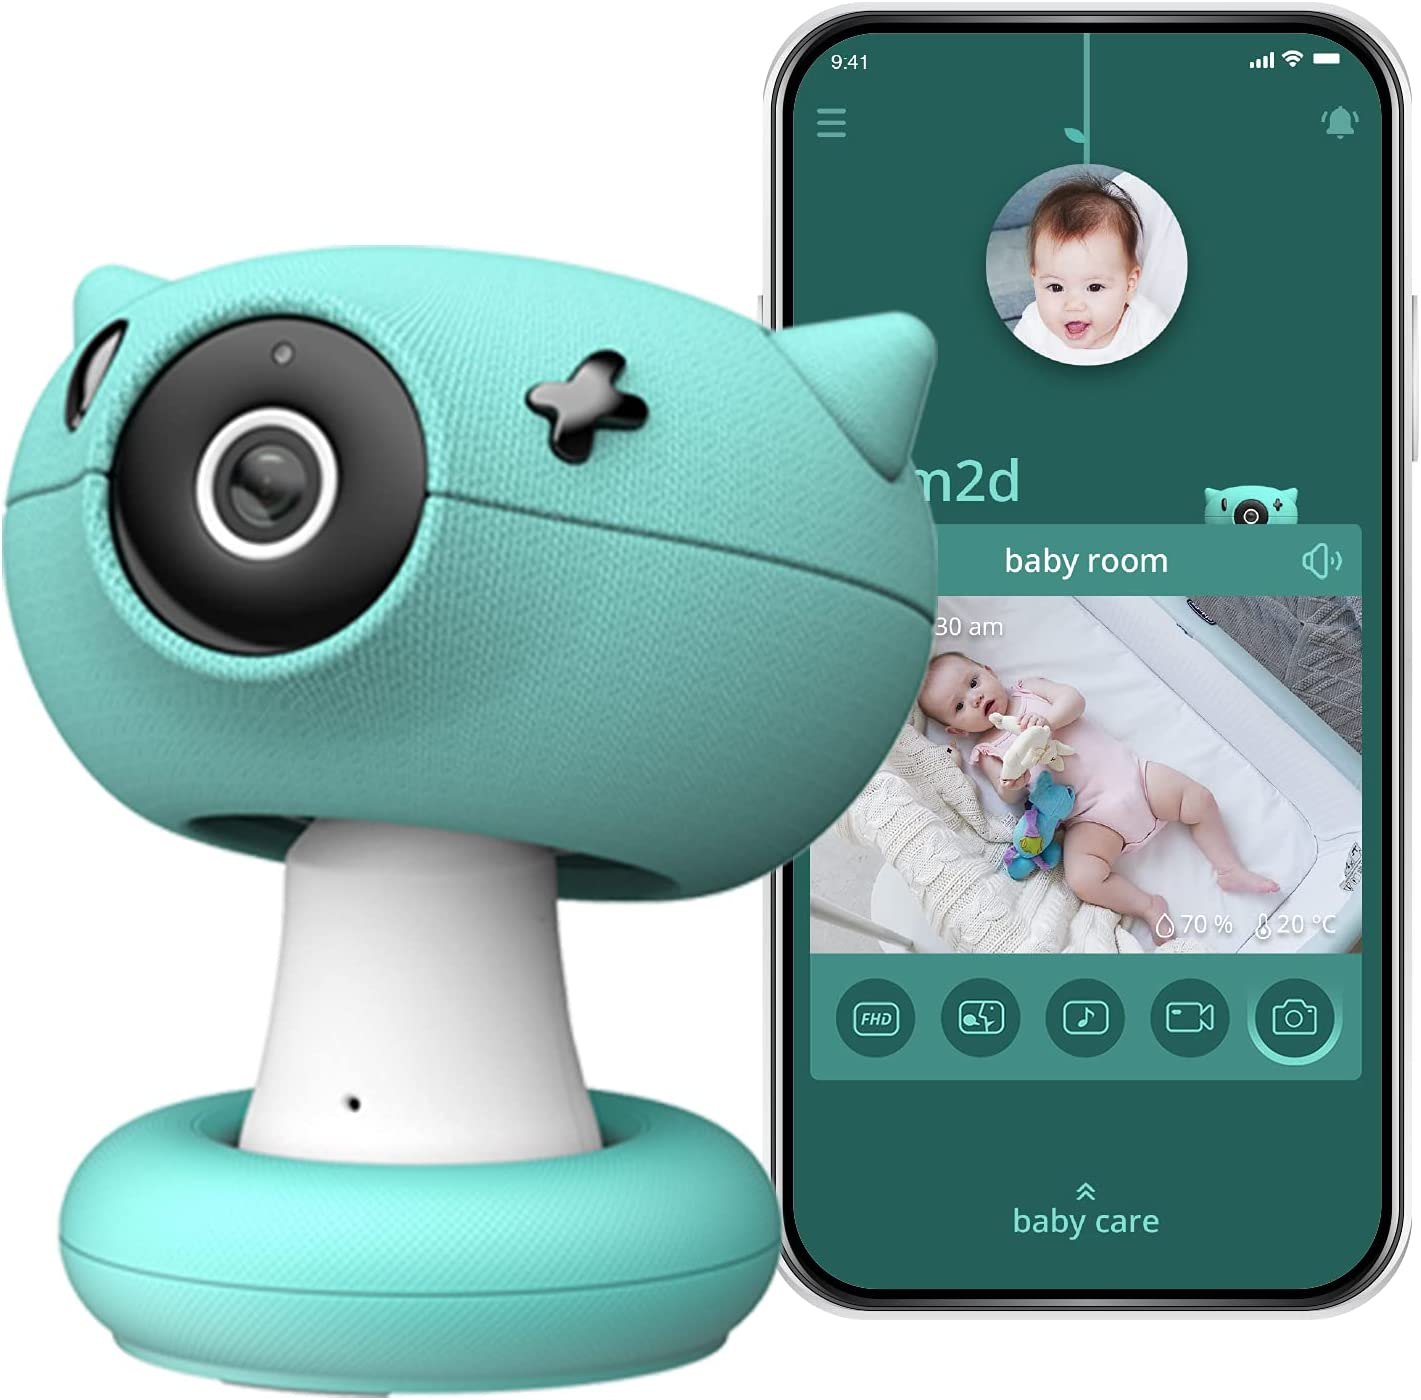 pixsee Smart Baby Monitor with Camera and Audio, Cry Recognition and Decoder, Temperature and Humidity Detection, 2-Way Talk, FHD Video 5MP Non-Distorting Camera, Non-Pixelated Night Vision and App…